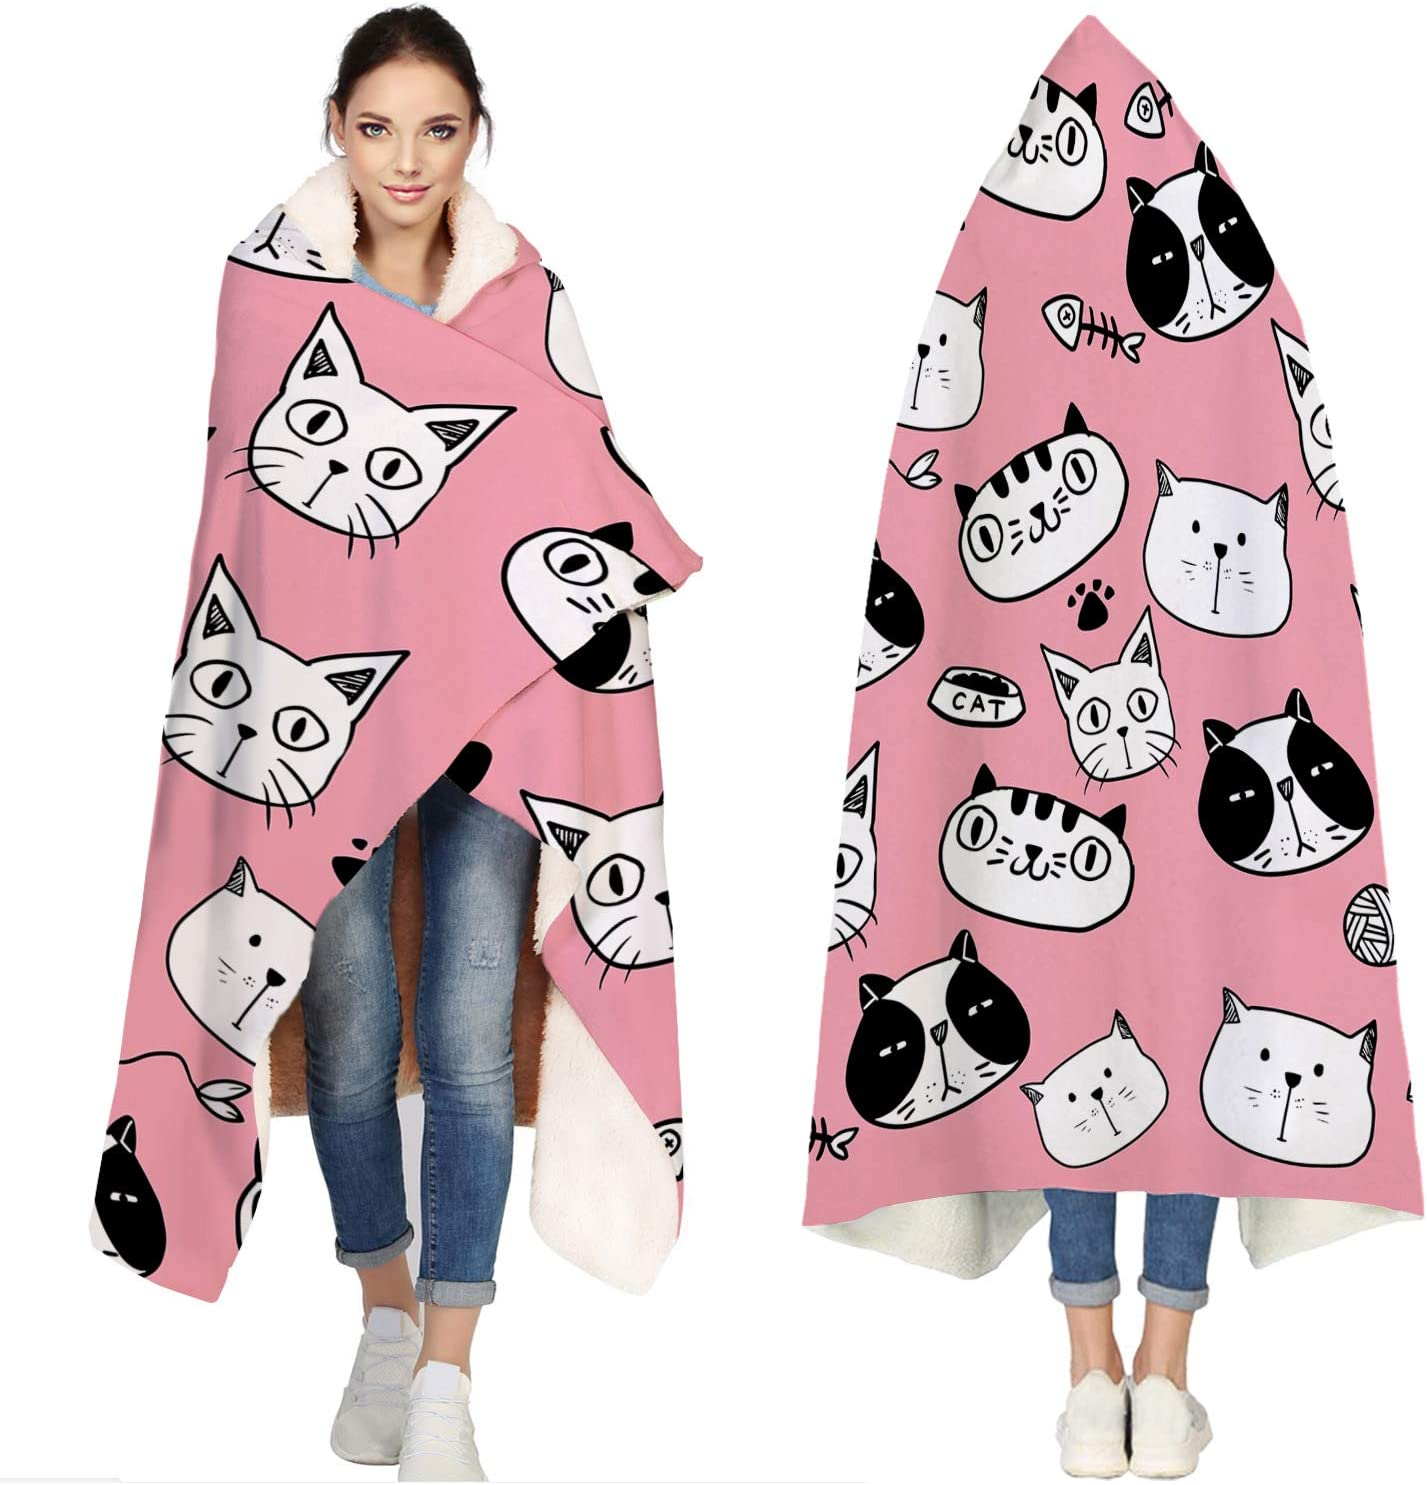 Seven Roses Hooded Blankets Fort Worth Mall for Cartoon Fashion Freehand Adults Ca Cute